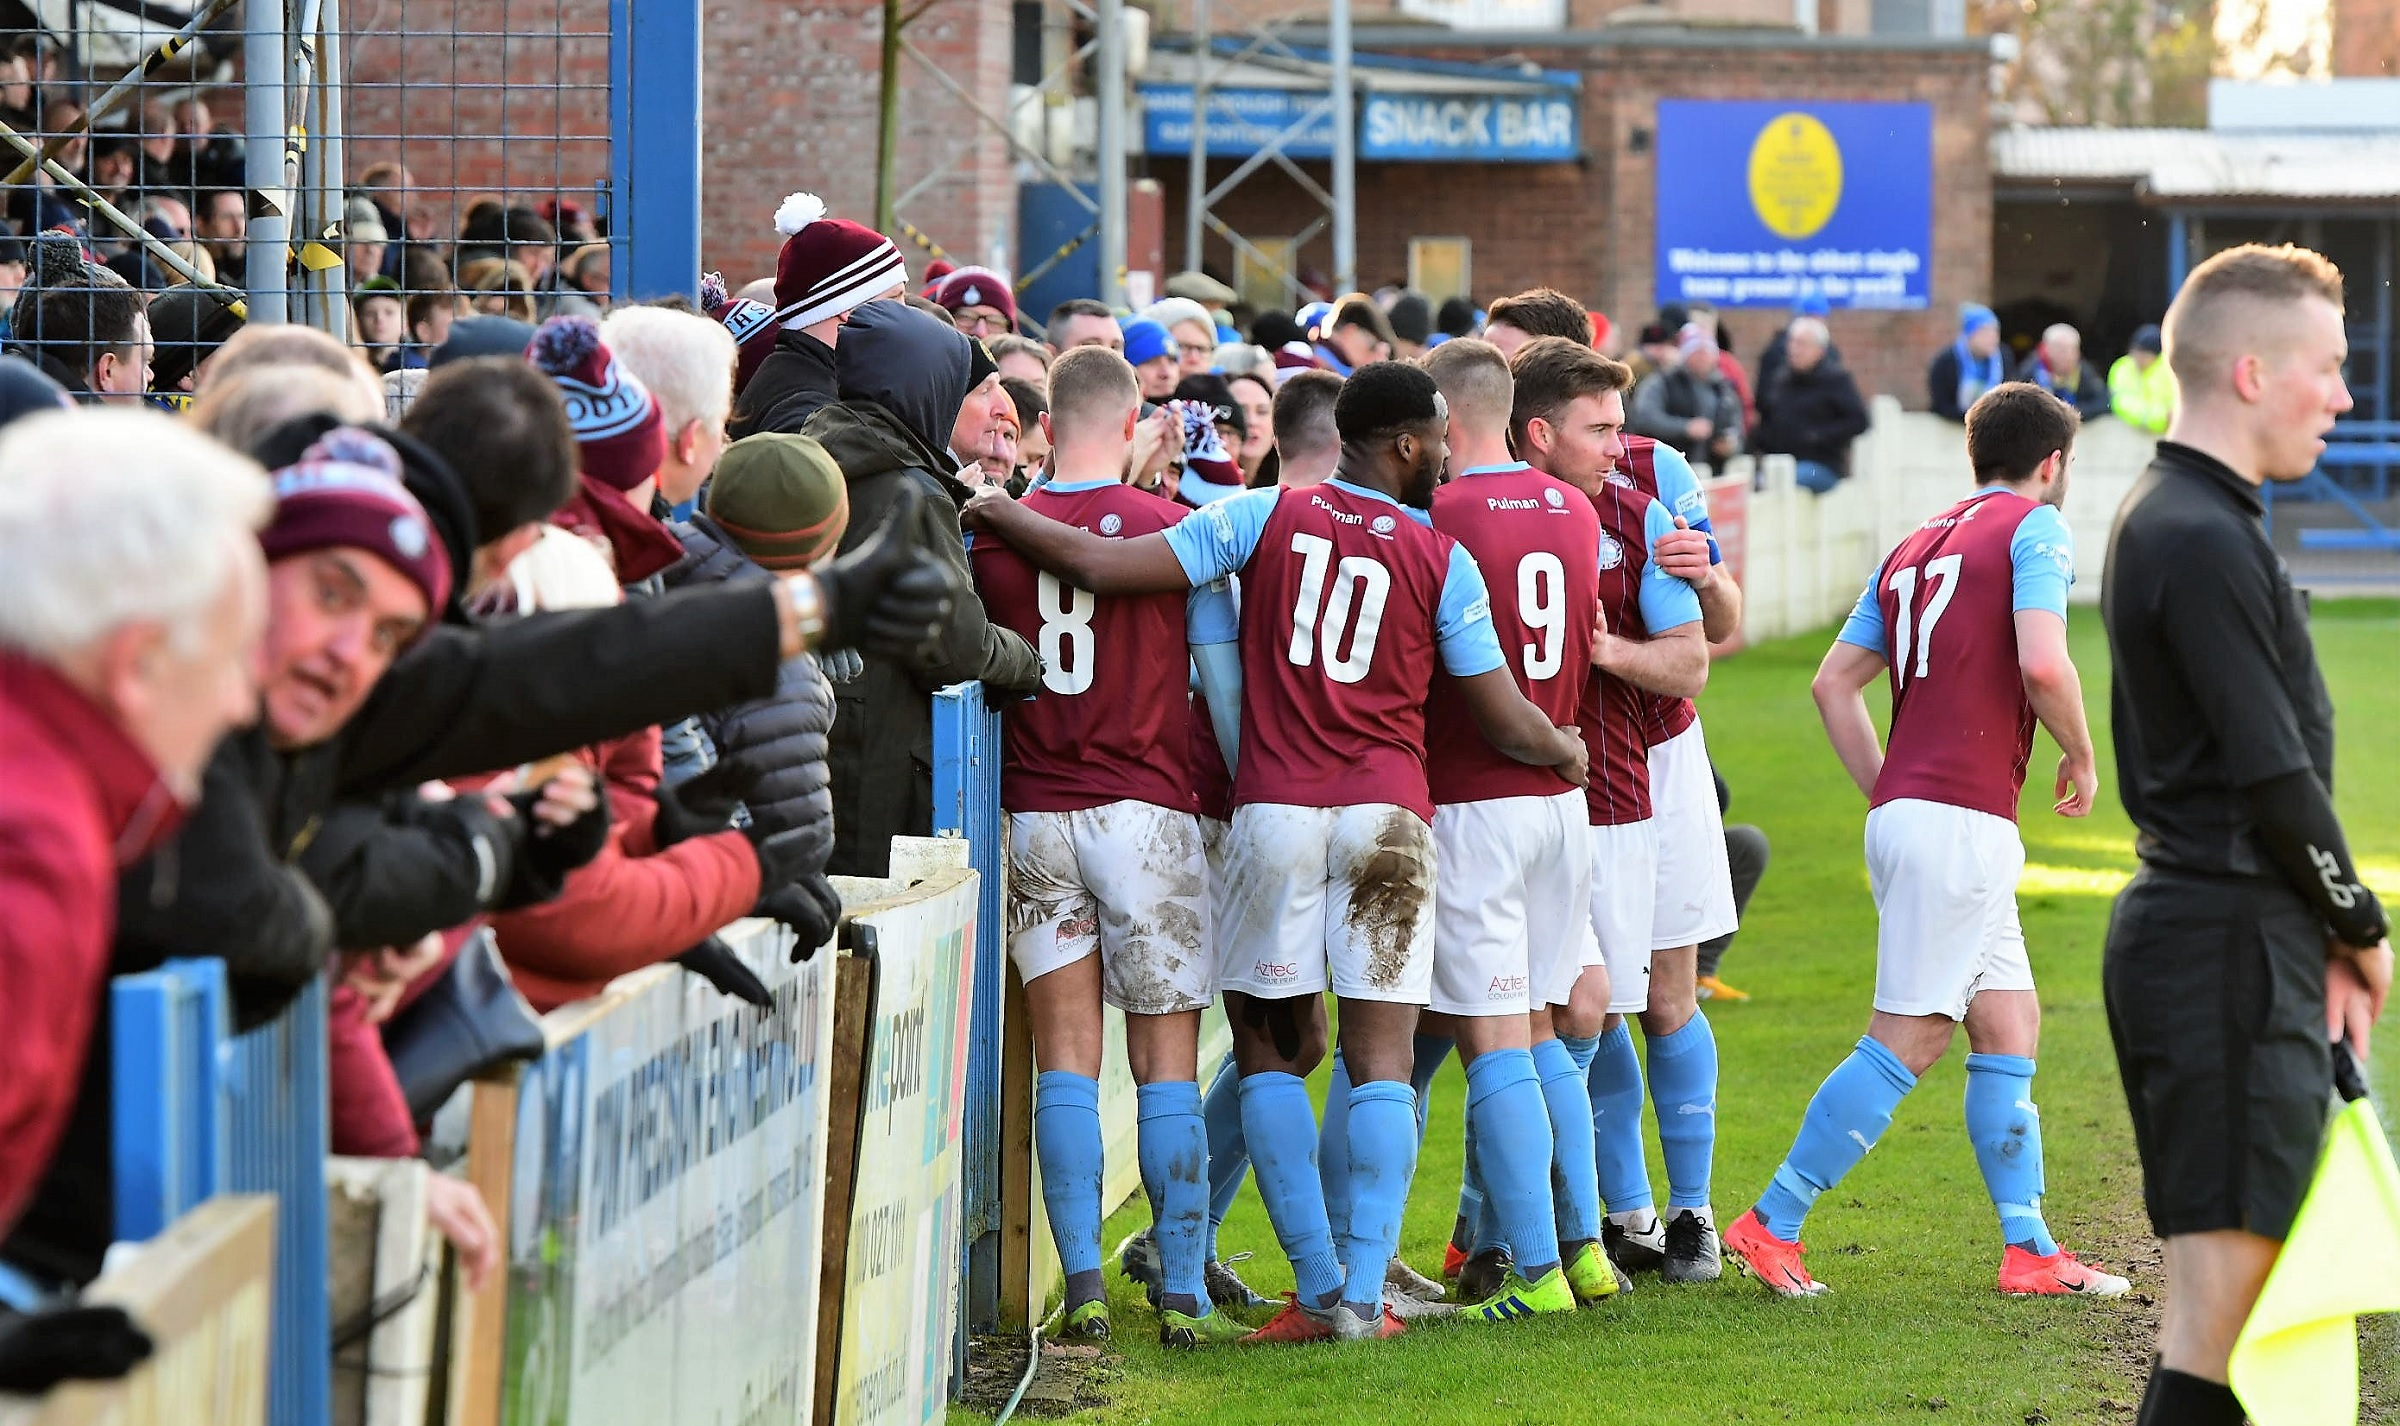 Gainsborough Trinity vs South Shields